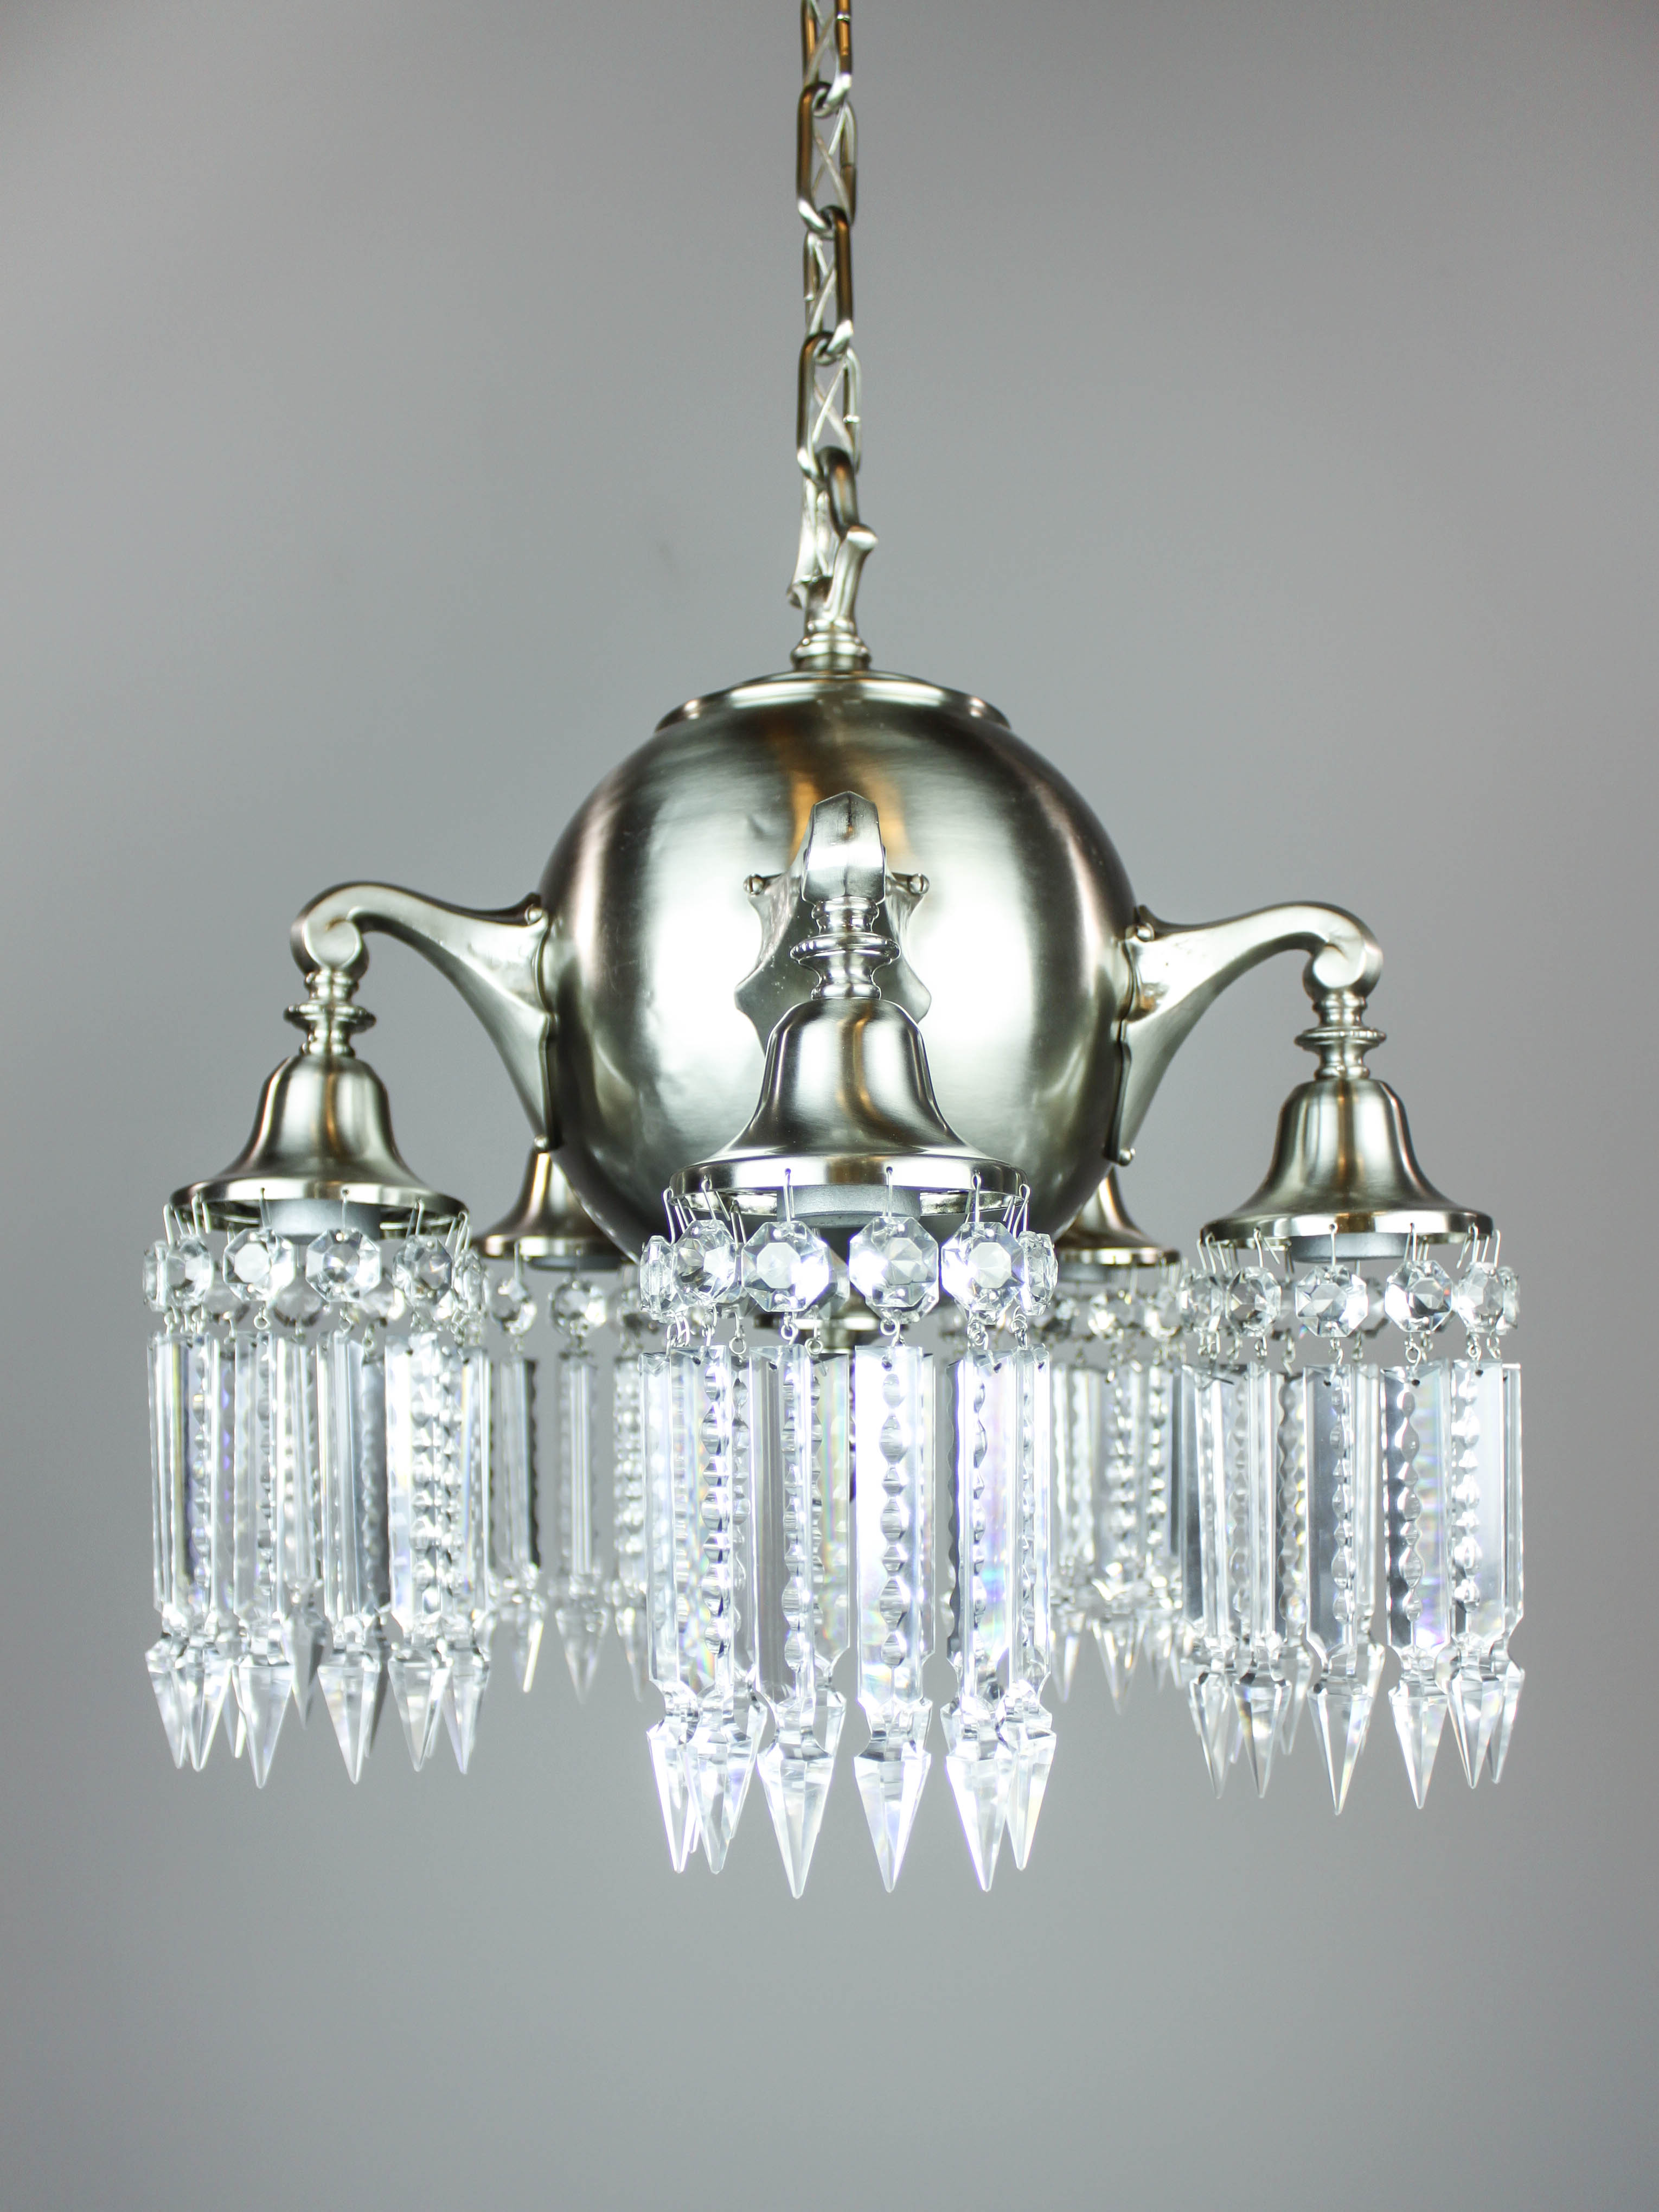 Nickel plated brass crystal light fixture 5 light